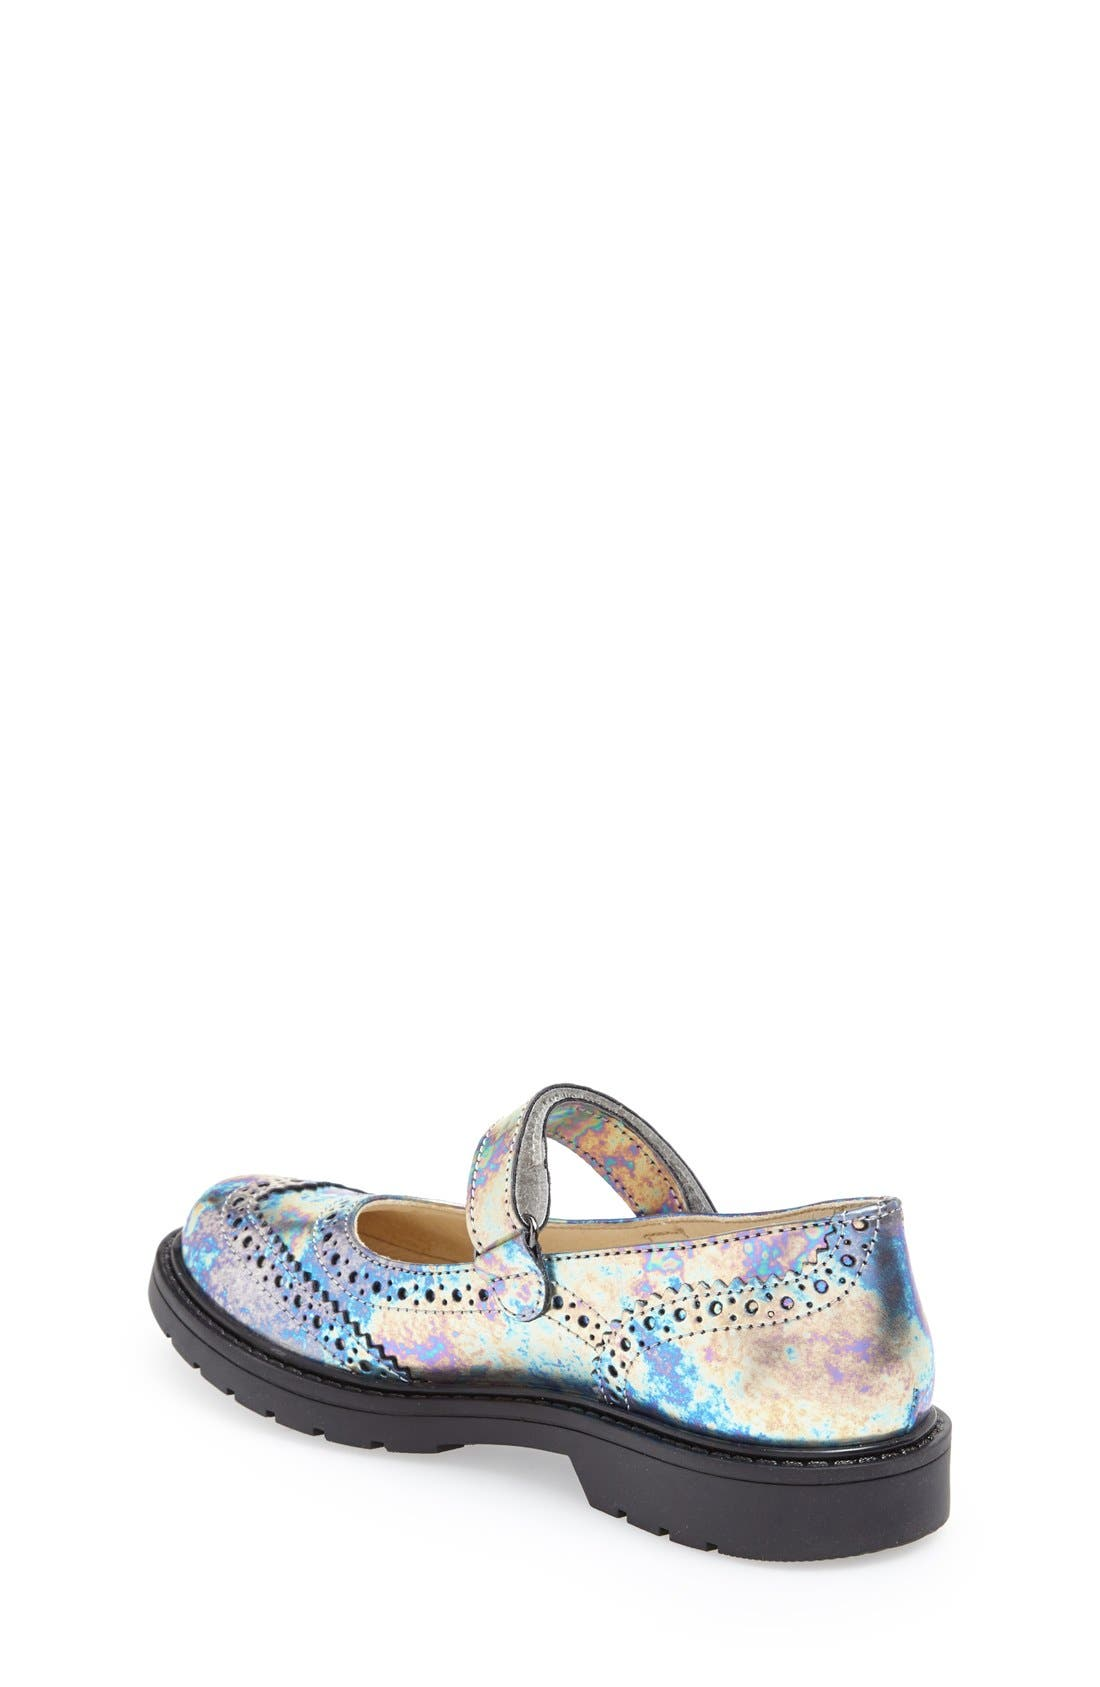 '4833' Leather Mary Jane Flat,                             Alternate thumbnail 3, color,                             040